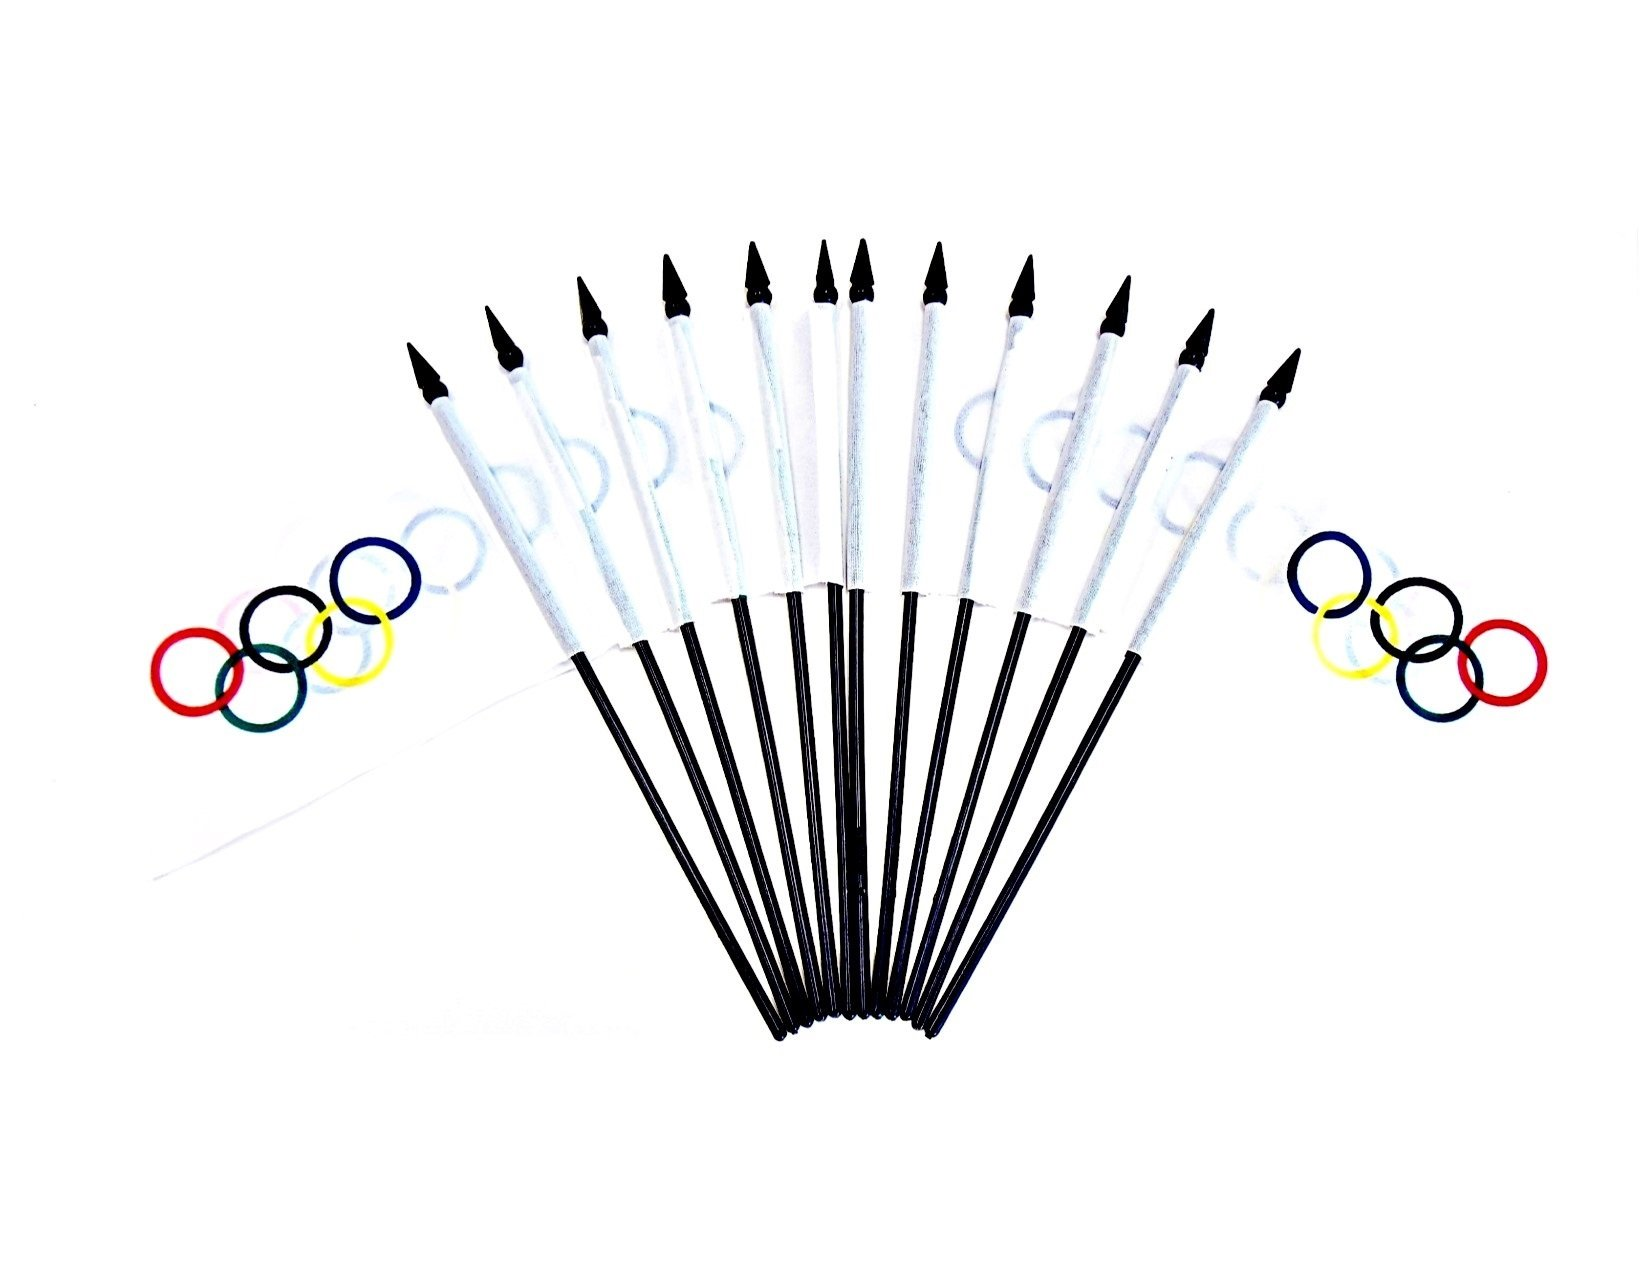 LICENSED Olympic Flags!! PACK of 12 4''x6'' Olympic Miniature Desk & Table Flags, 1 Dozen 4''x 6'' Olympic Rings Small Mini Stick Flags